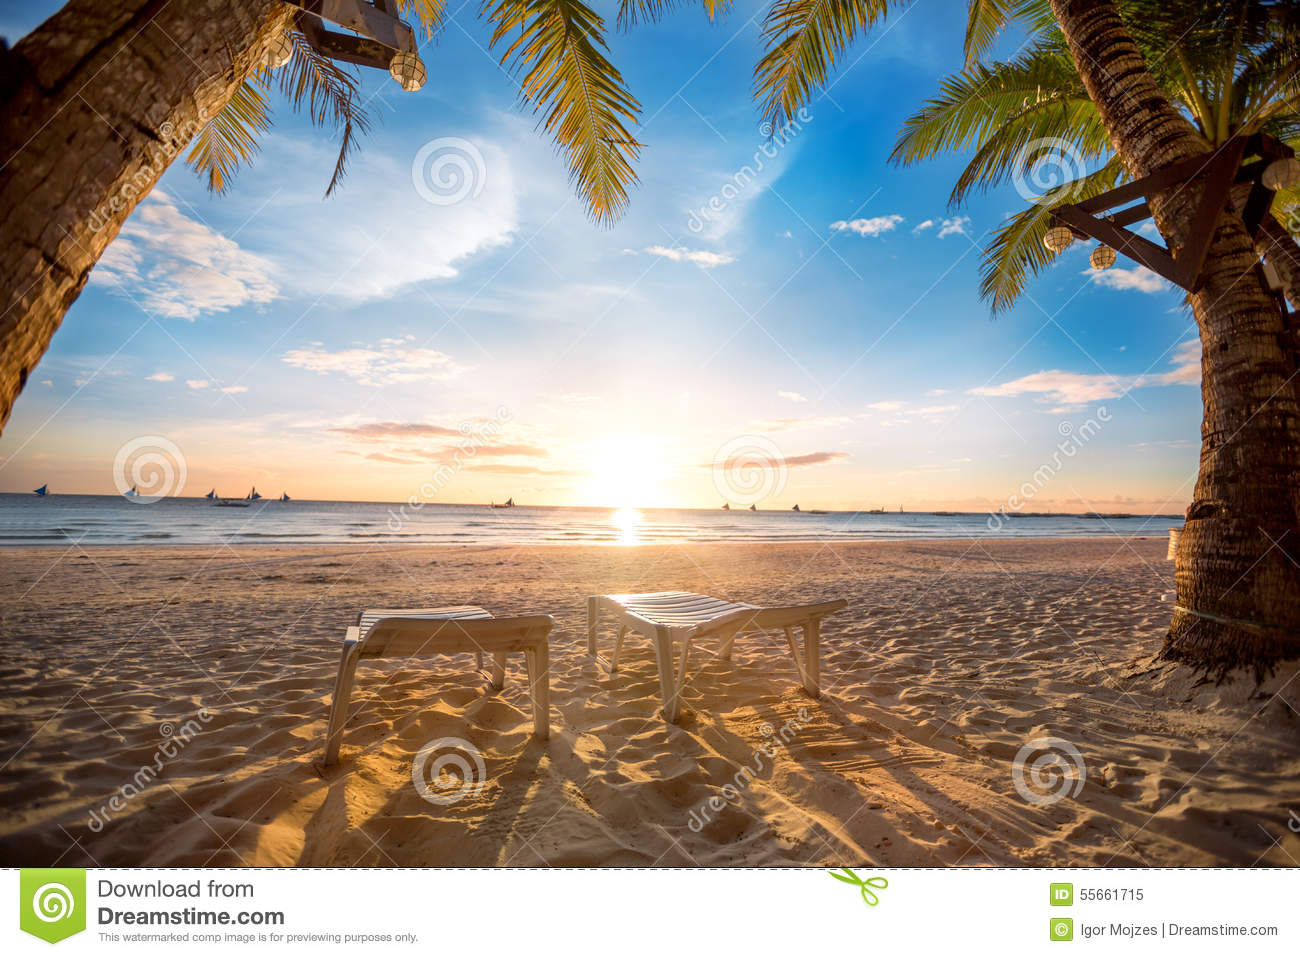 Romantic Pictures Of Tropical Beaches: Paradise For Two Stock Photo